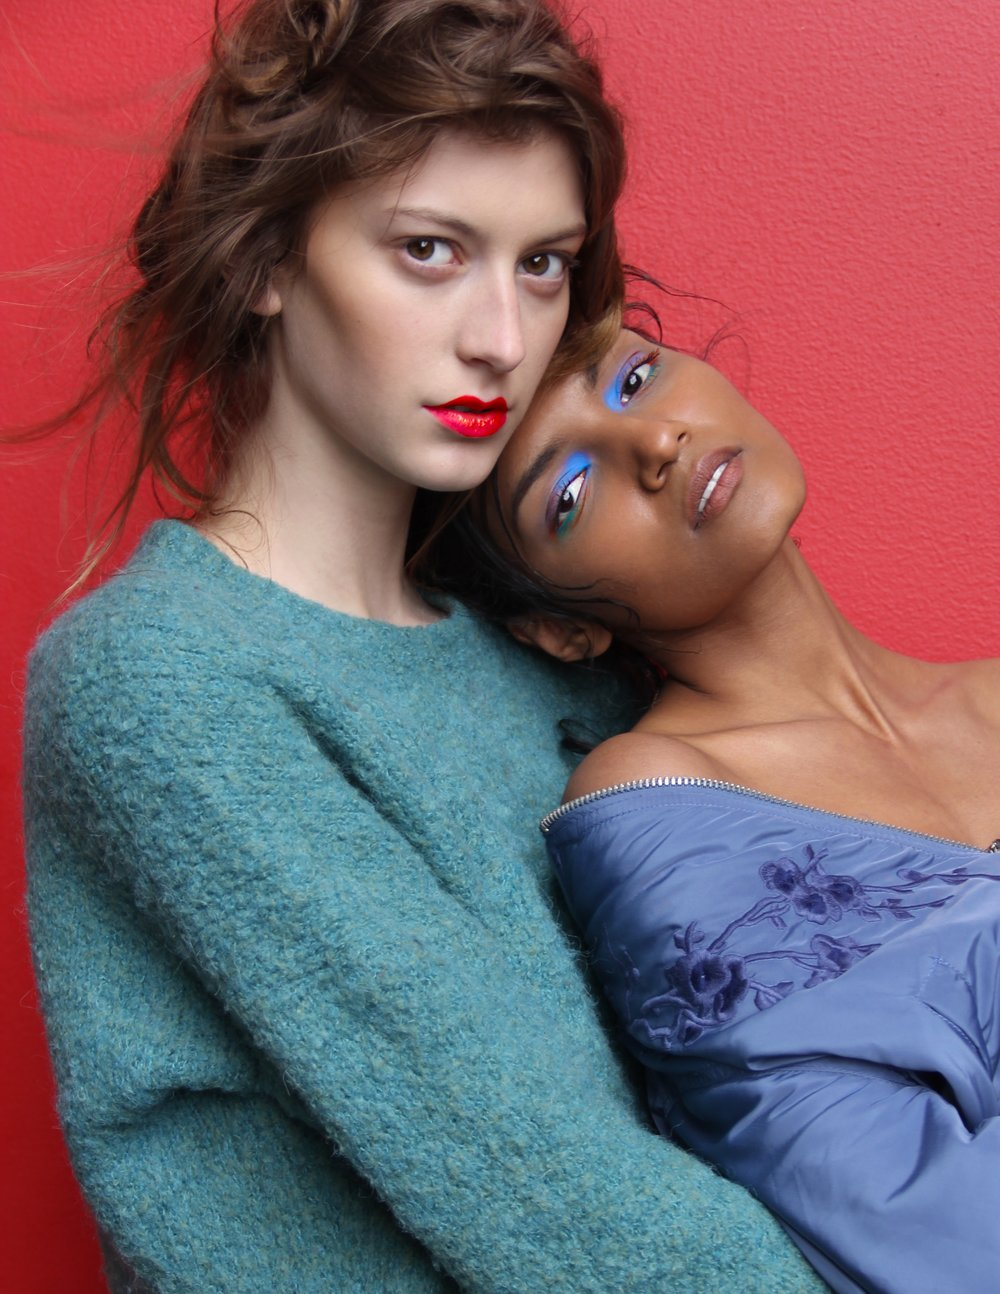 Photographer: Ivan McCartney  Models: Julia Mandirola & Shaanti Chaitram (Major Models NY)